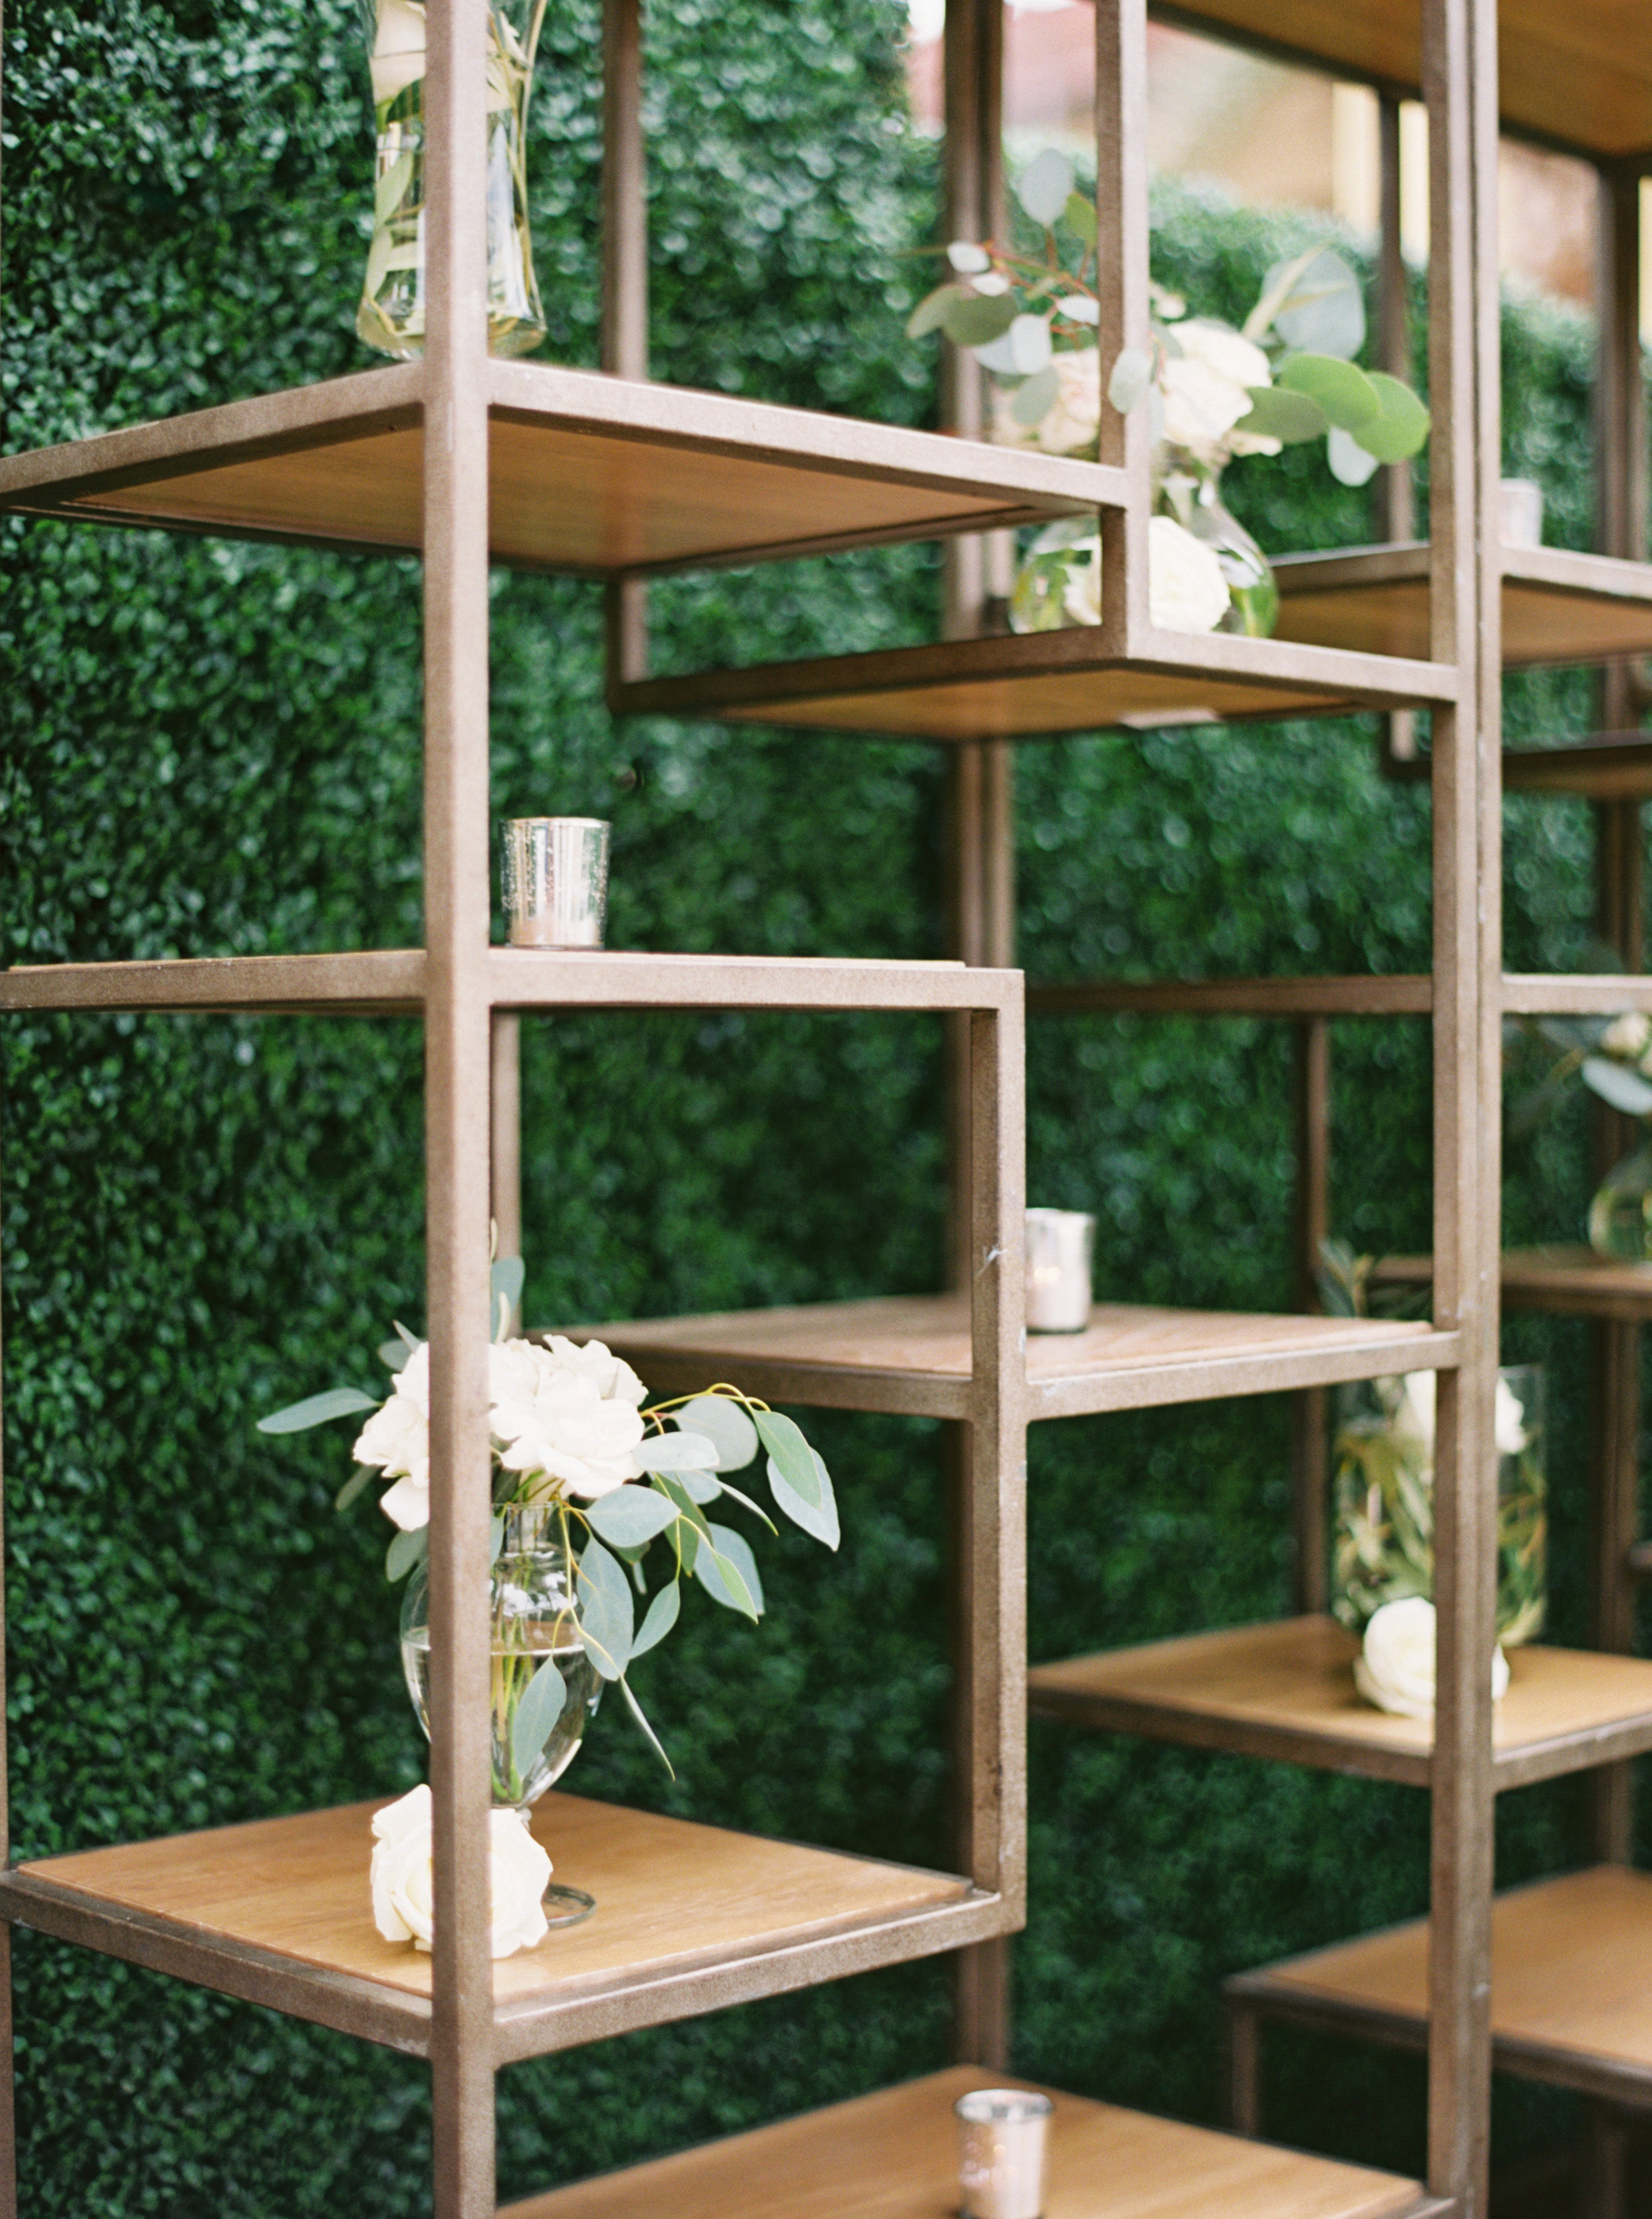 38 bar shelves simple wedding centerpiece white floral centerpiece Life Design Events photos by Melissa Jill Photography.jpg